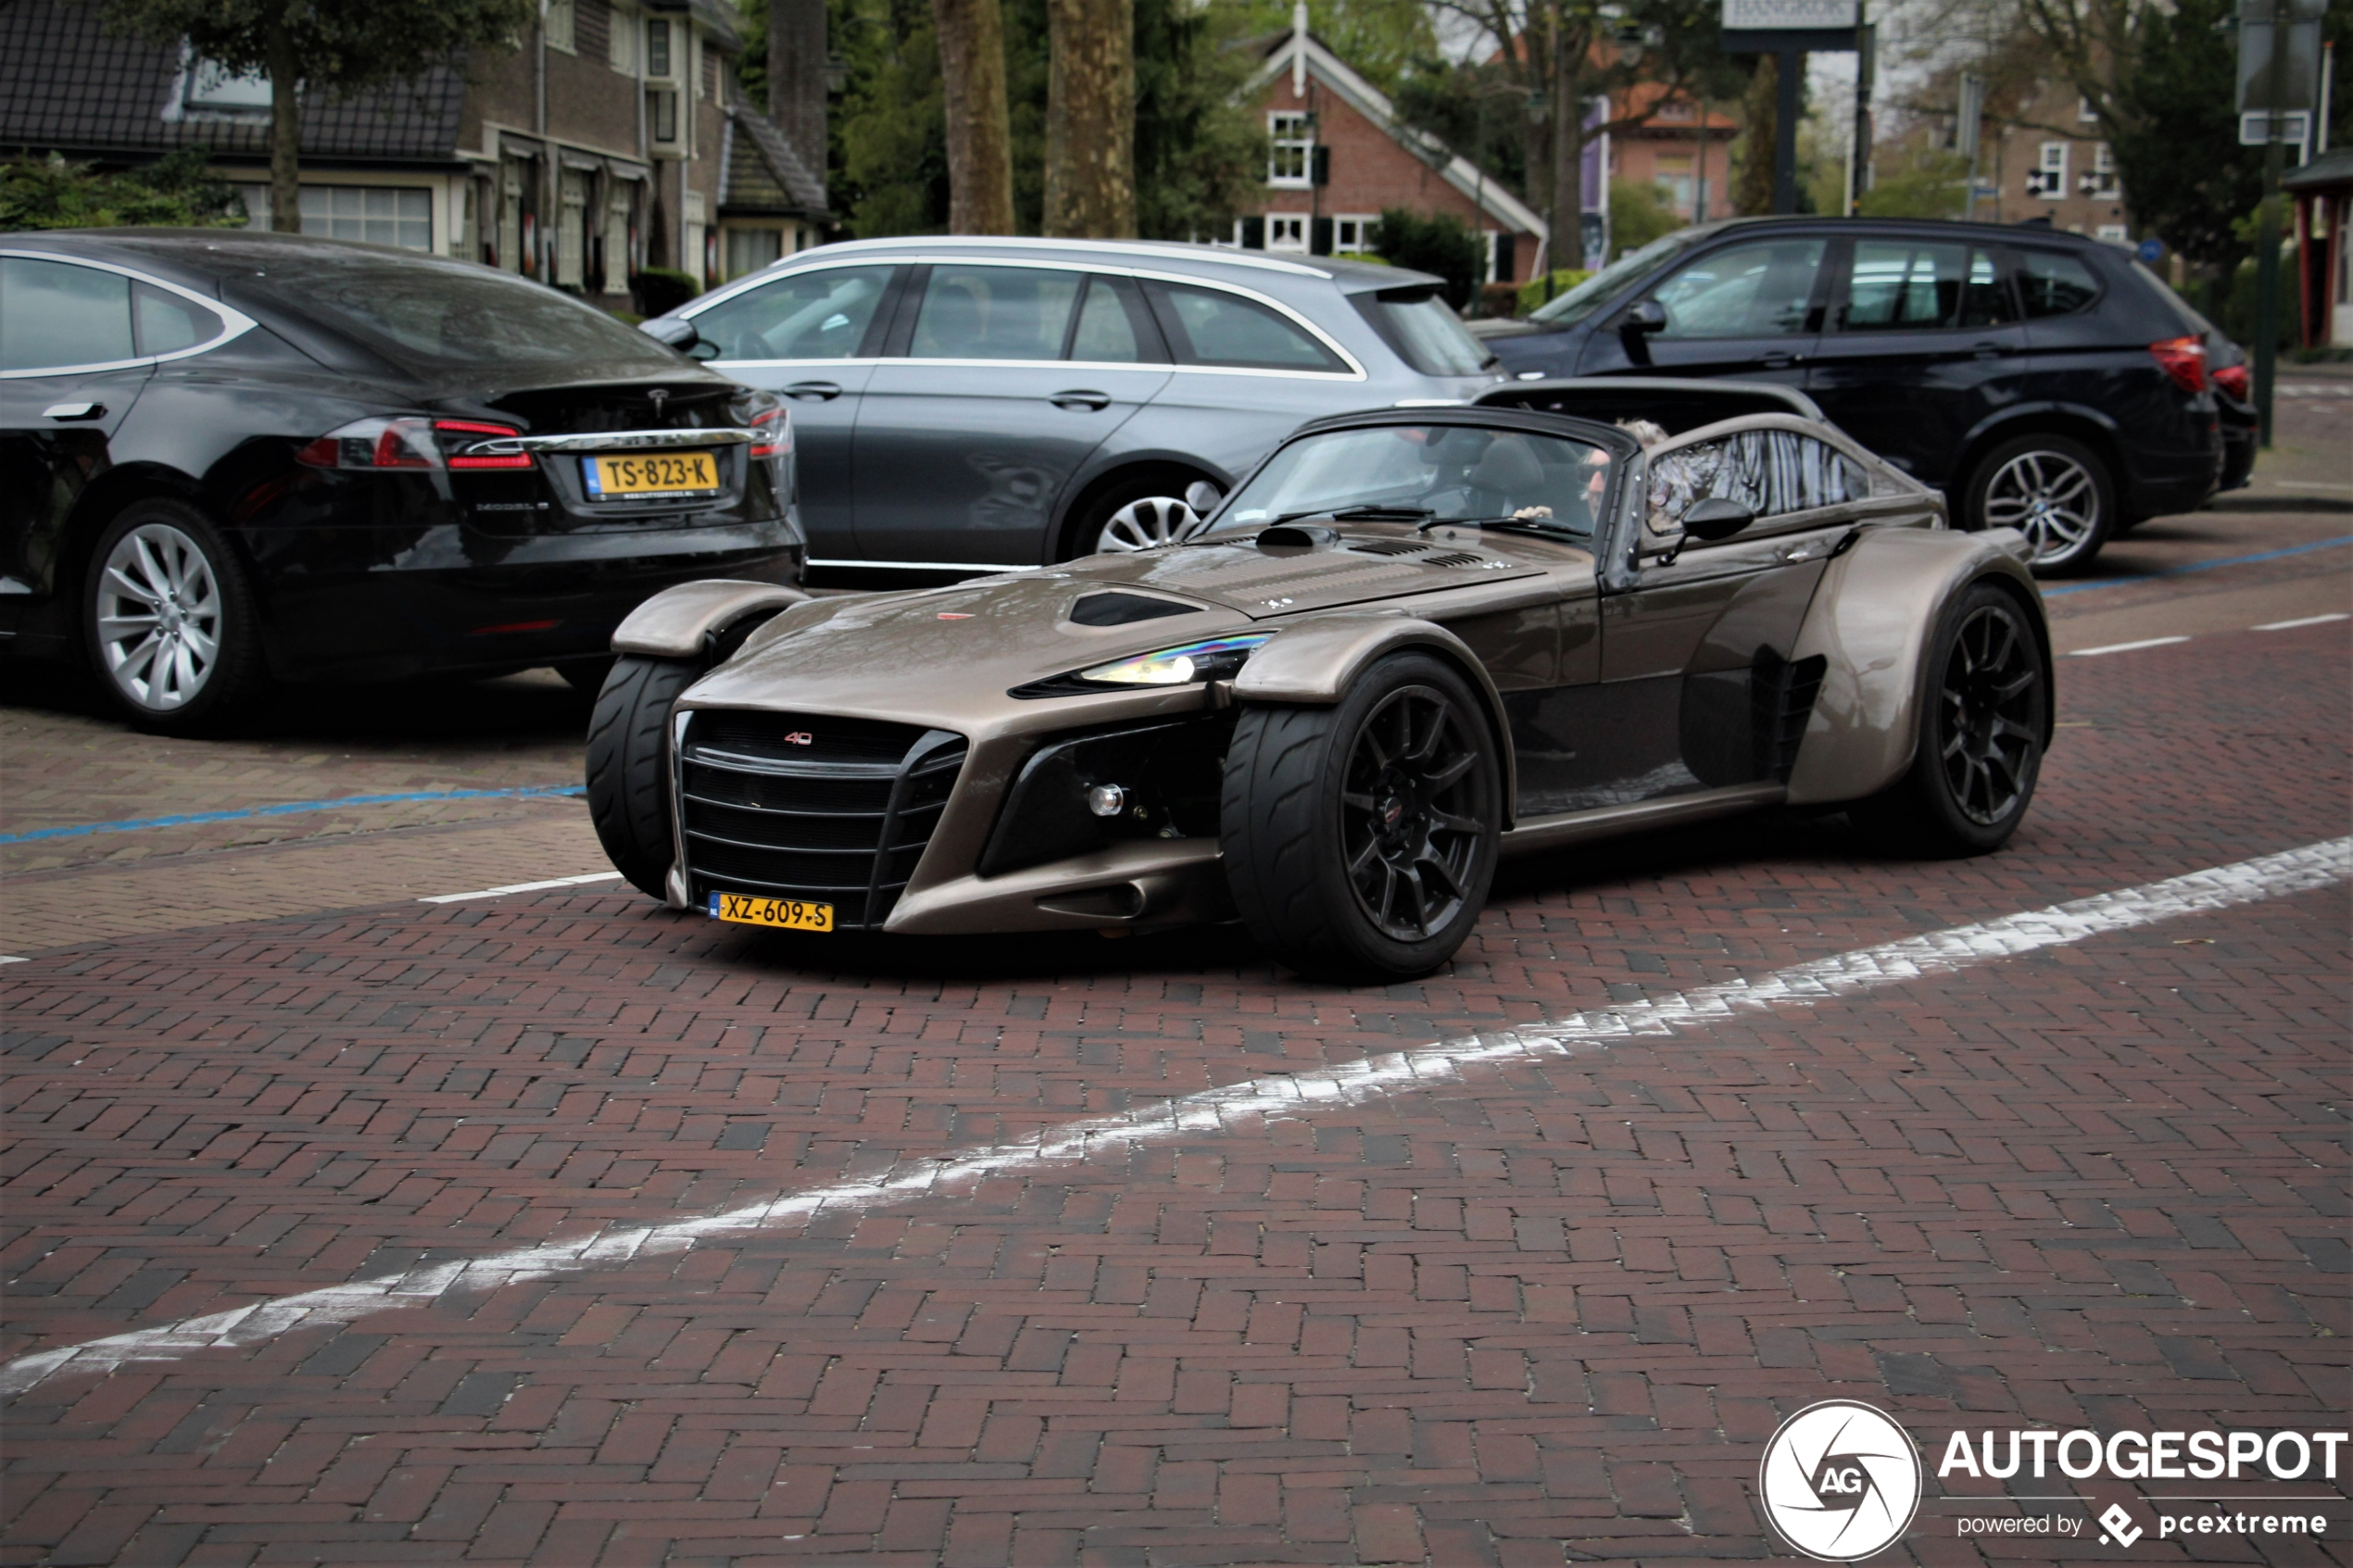 Donkervoort D8 GTO-40 - 24 March 2021 - Autogespot